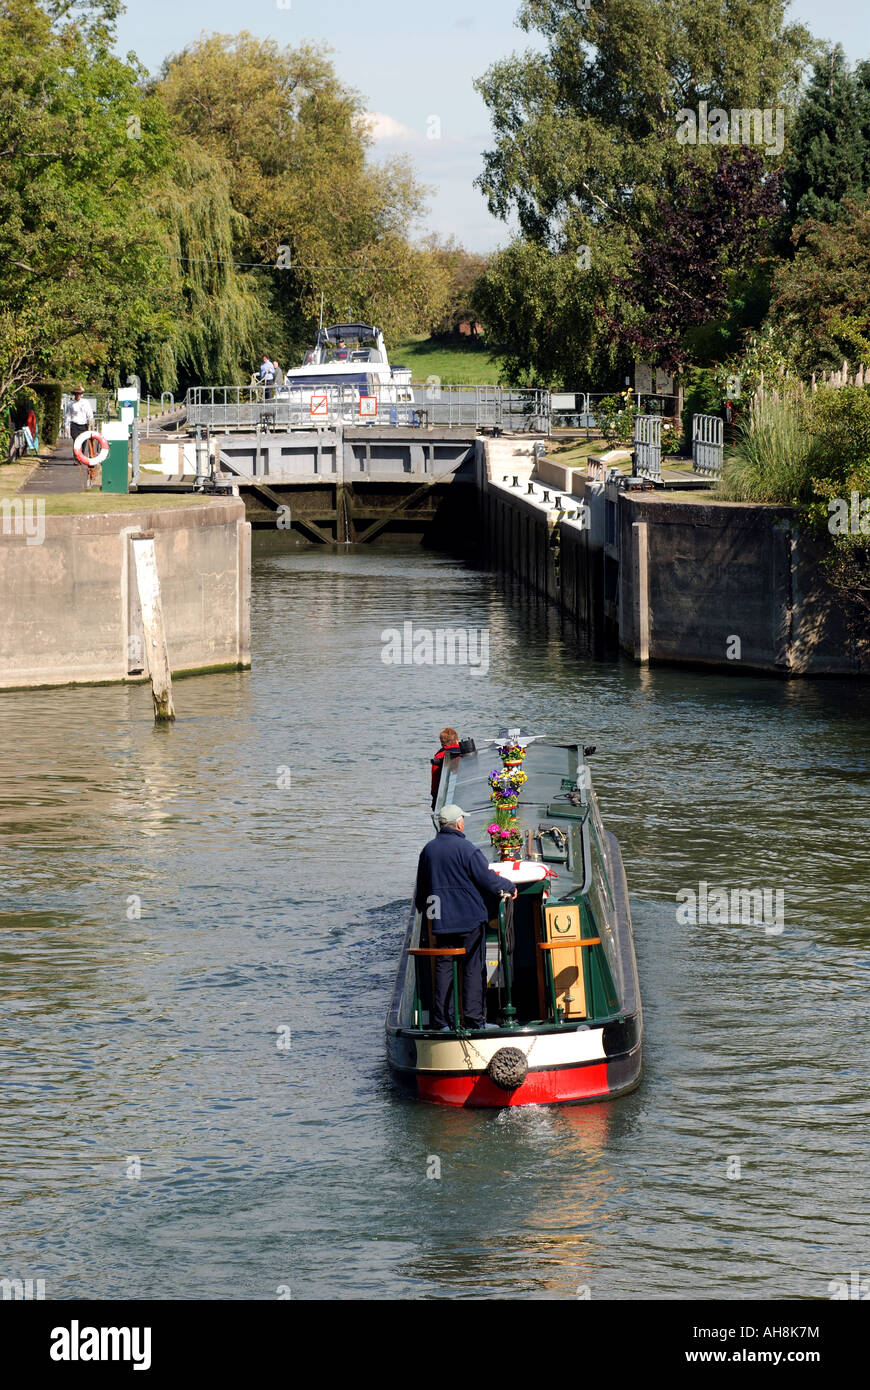 Narrowboat entering Day`s Lock on River Thames, Oxfordshire, England, UK - Stock Image